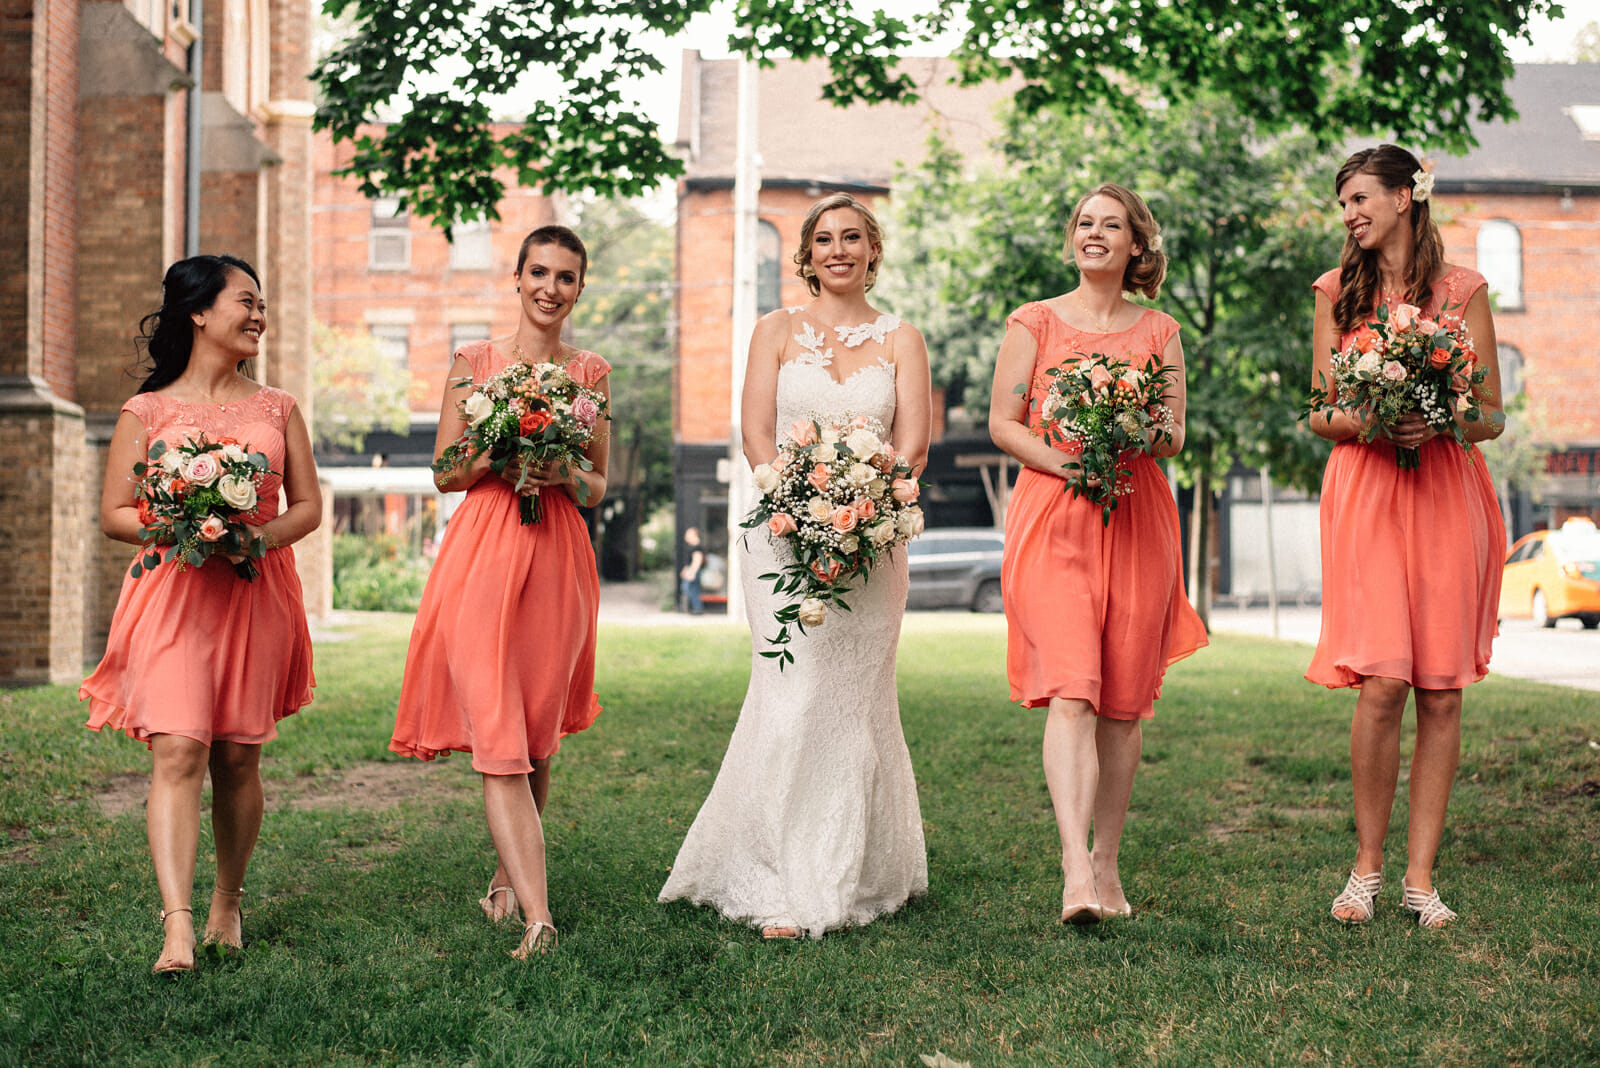 bride walks with bridesmaids by church in toronto